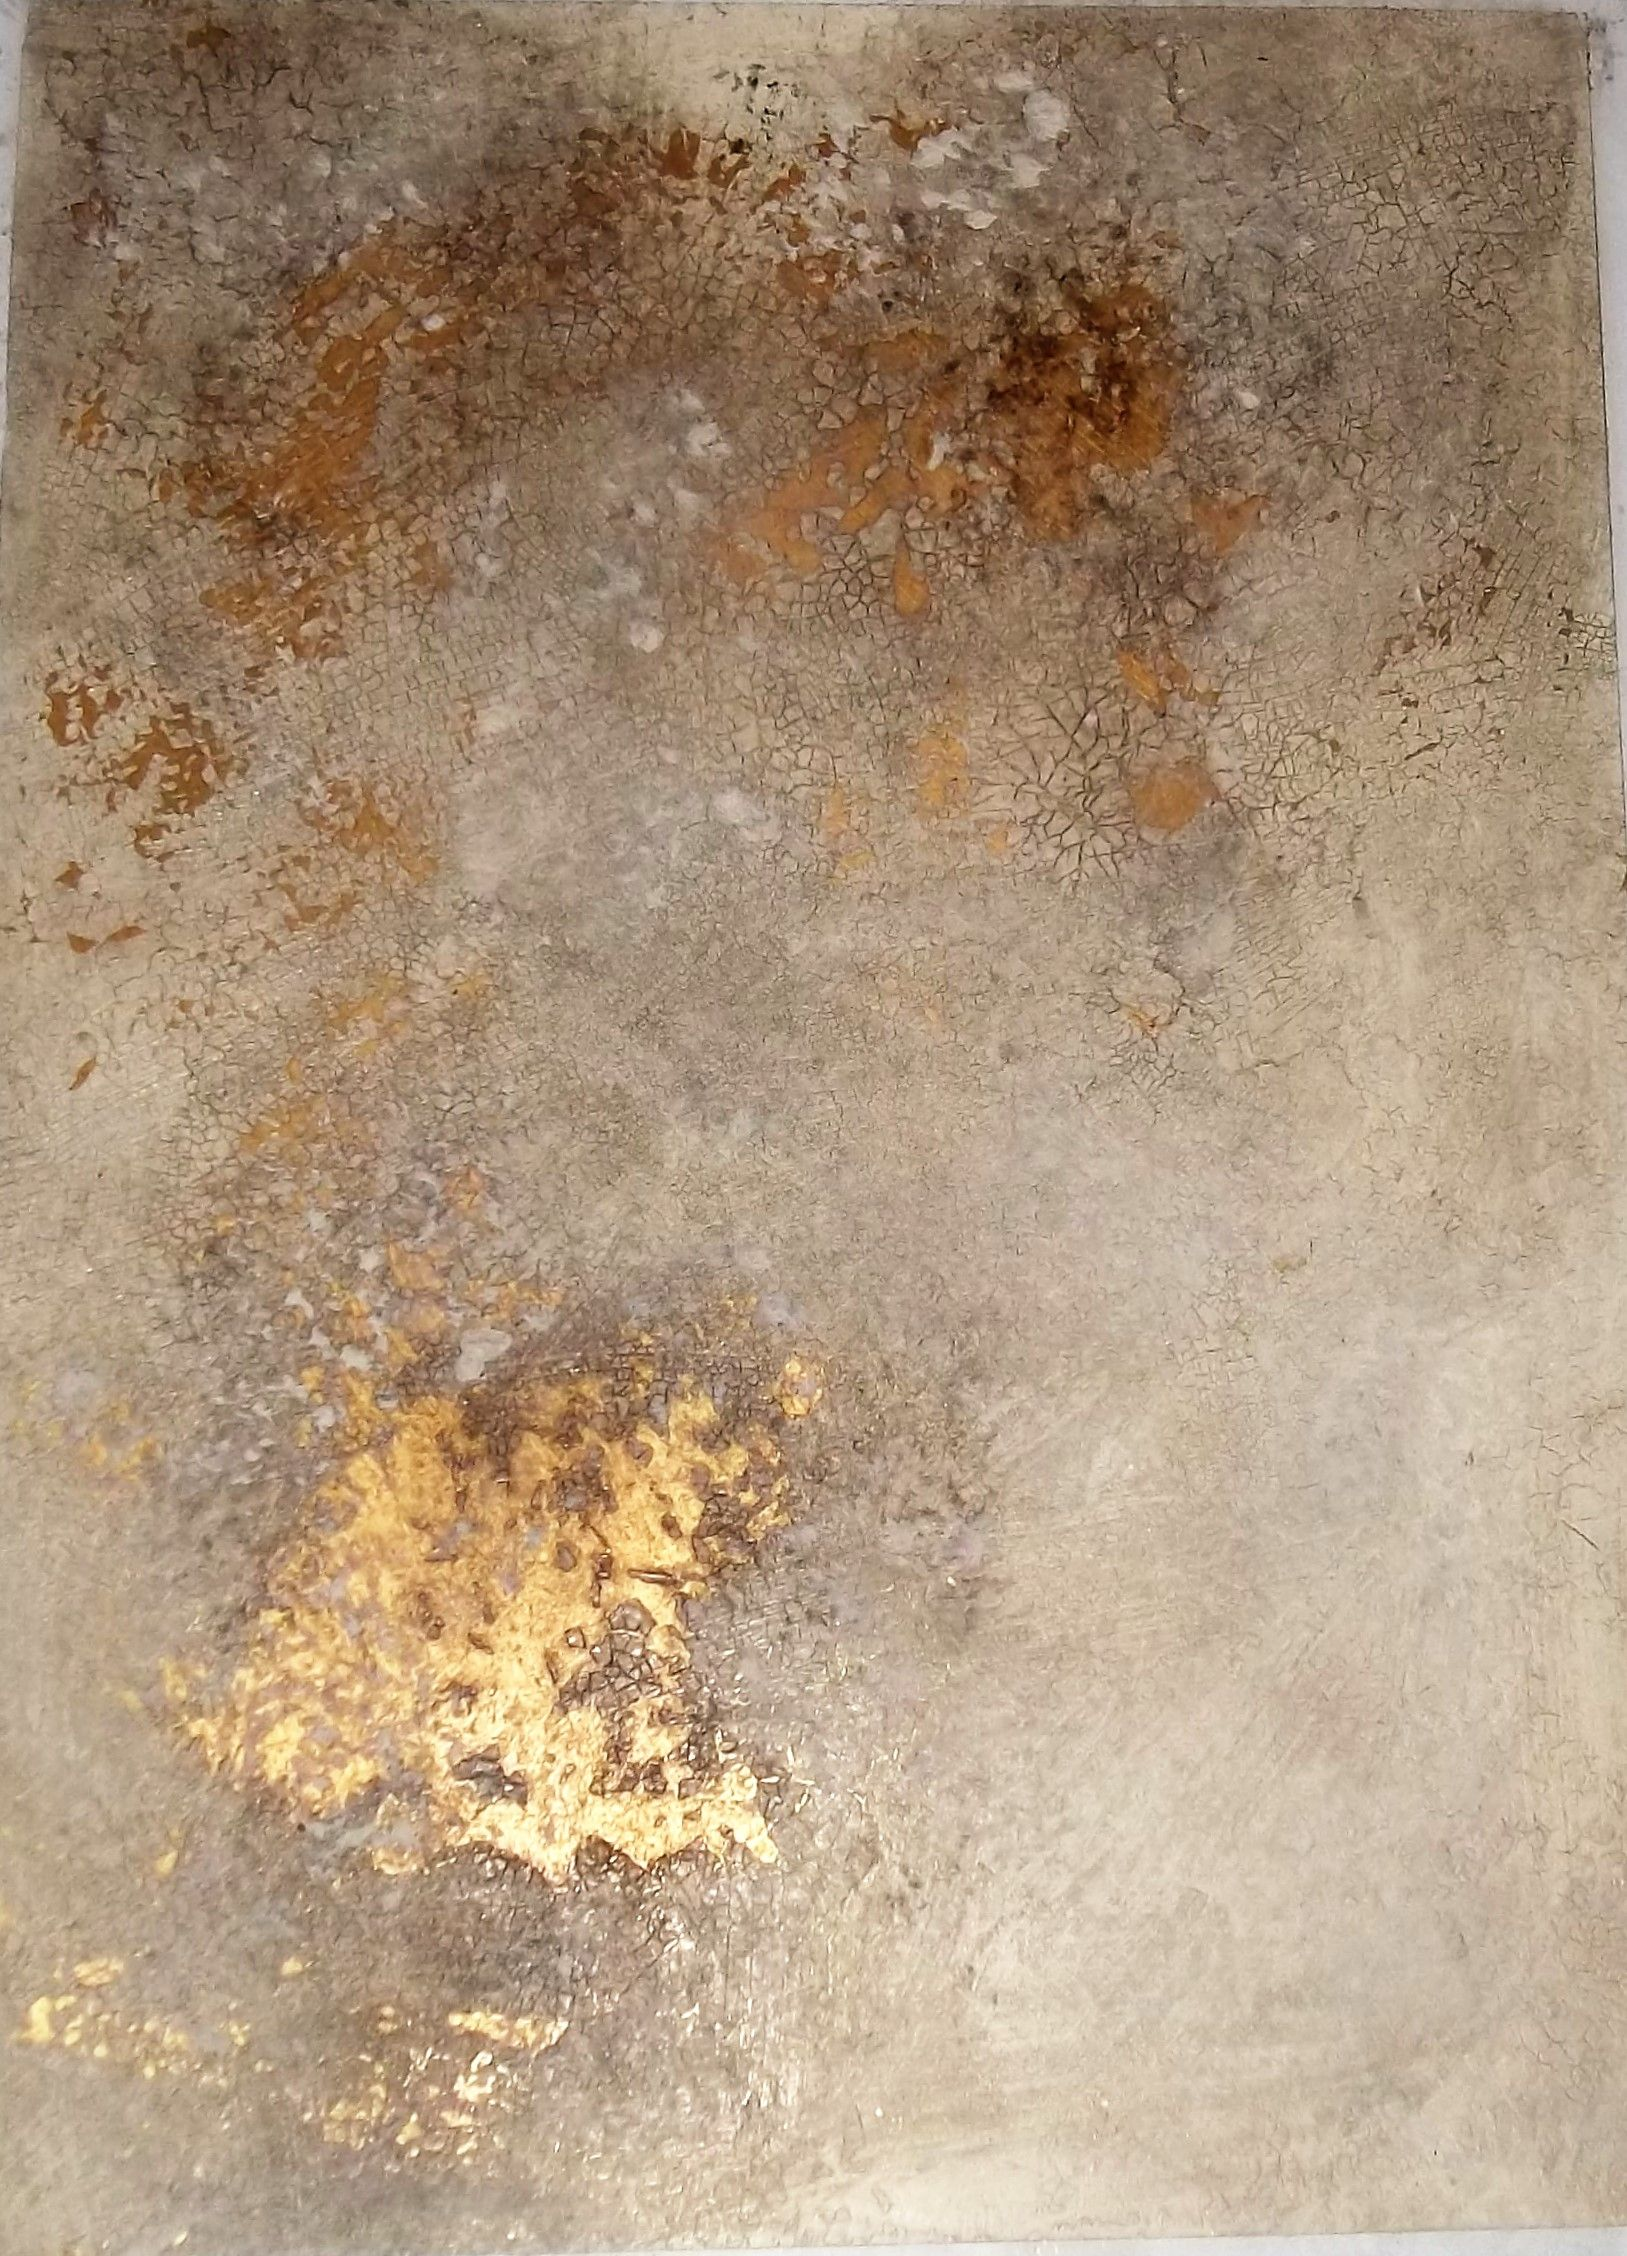 Plaster Finish Crackle Exposes Gold Finish Below More